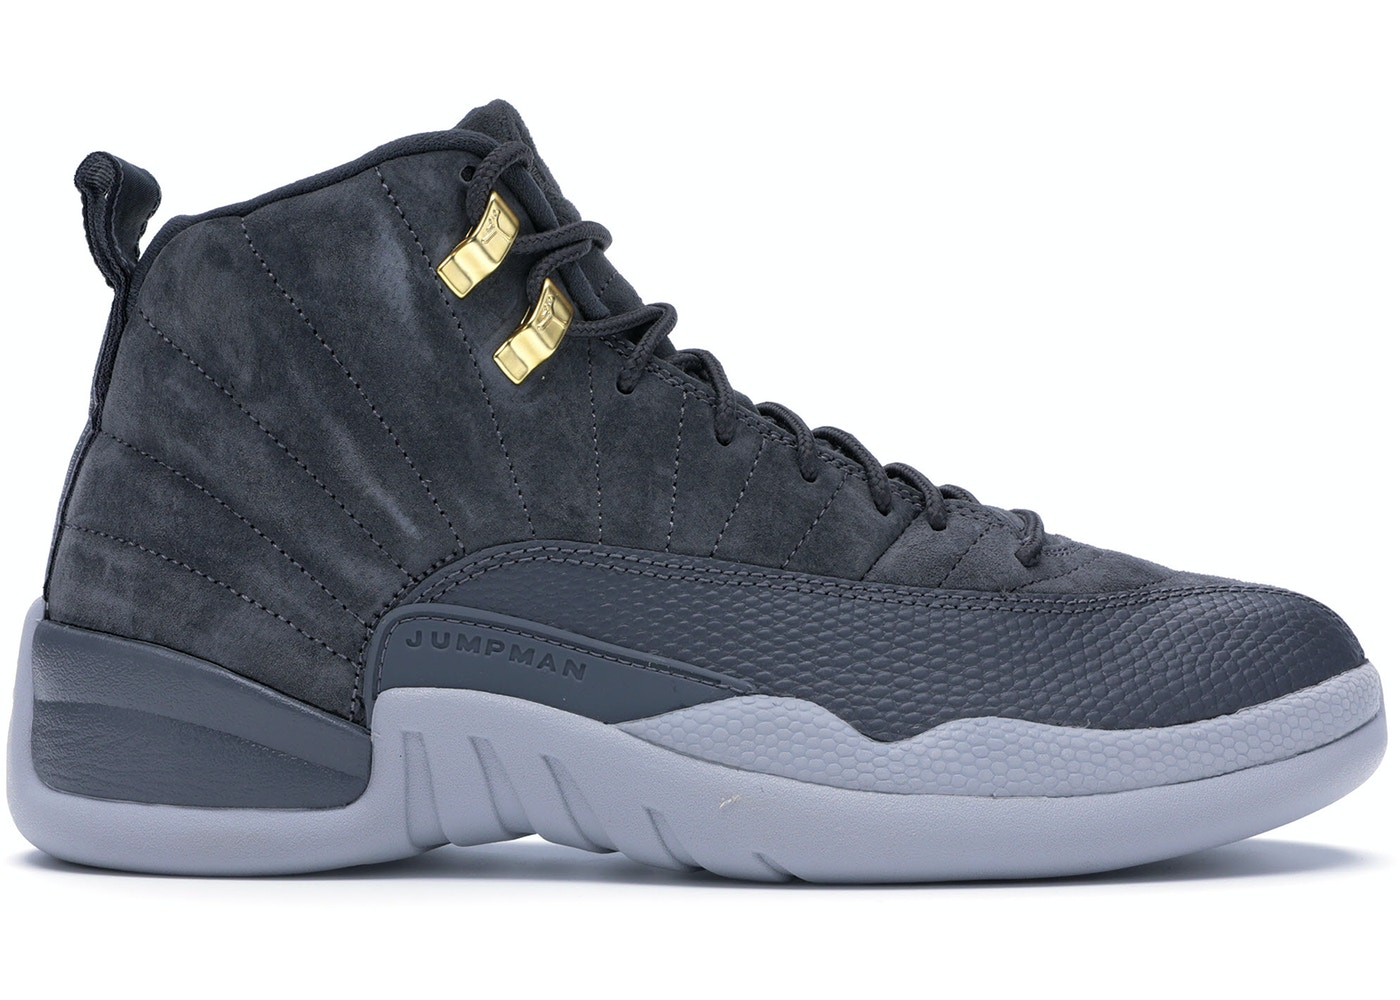 d3dea4b6337a Jordan 12 Retro Dark Grey - 130690-005